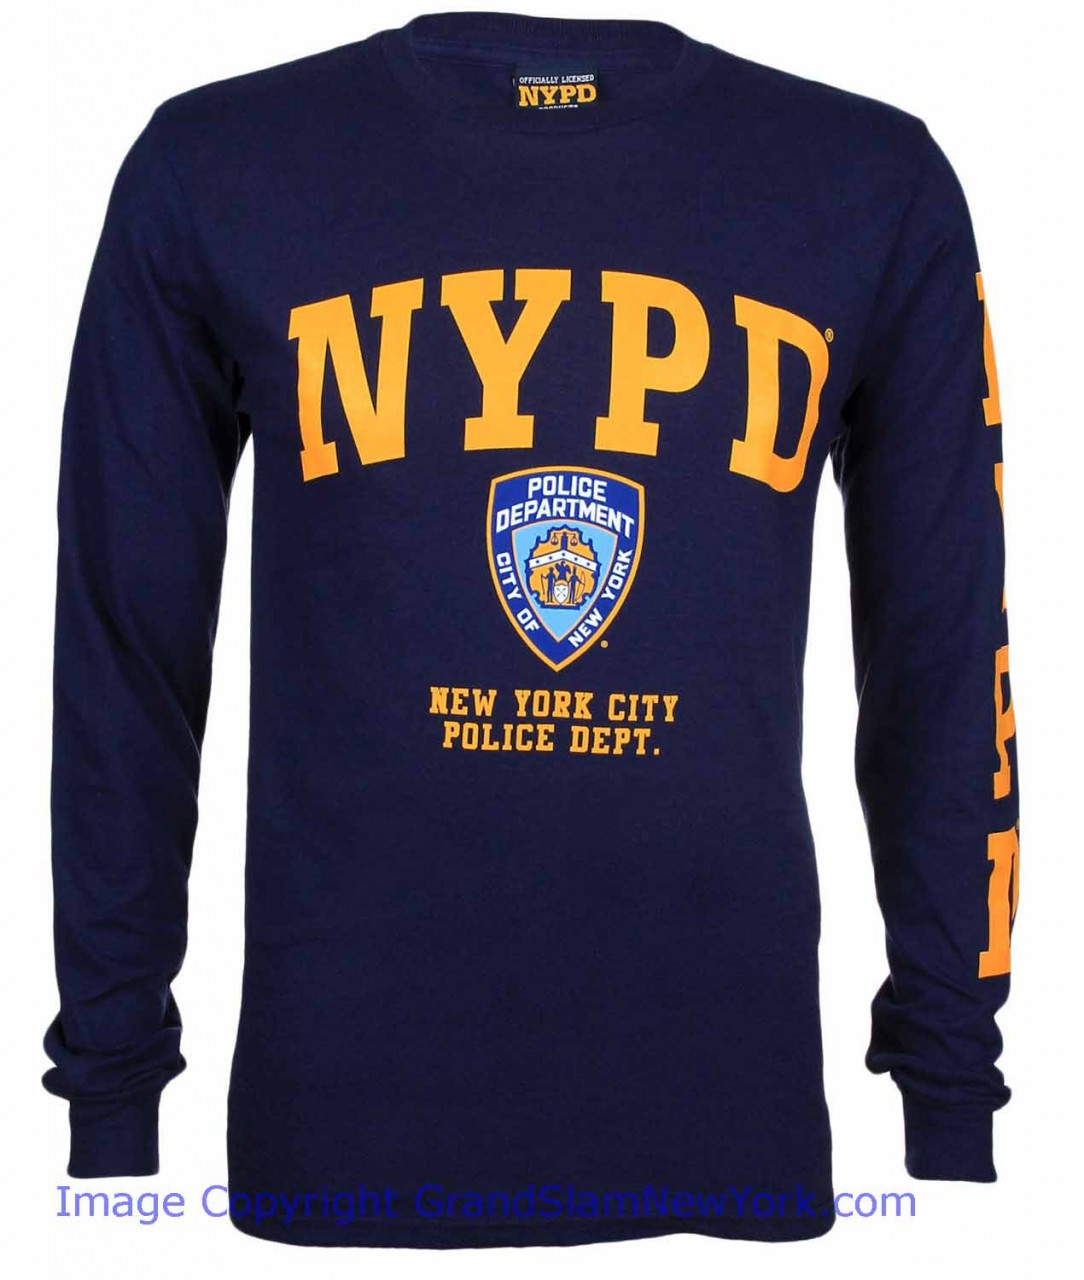 ce5818788 NYPD Full Chest and Sleeve Long Sleeve T-Shirt - Navy